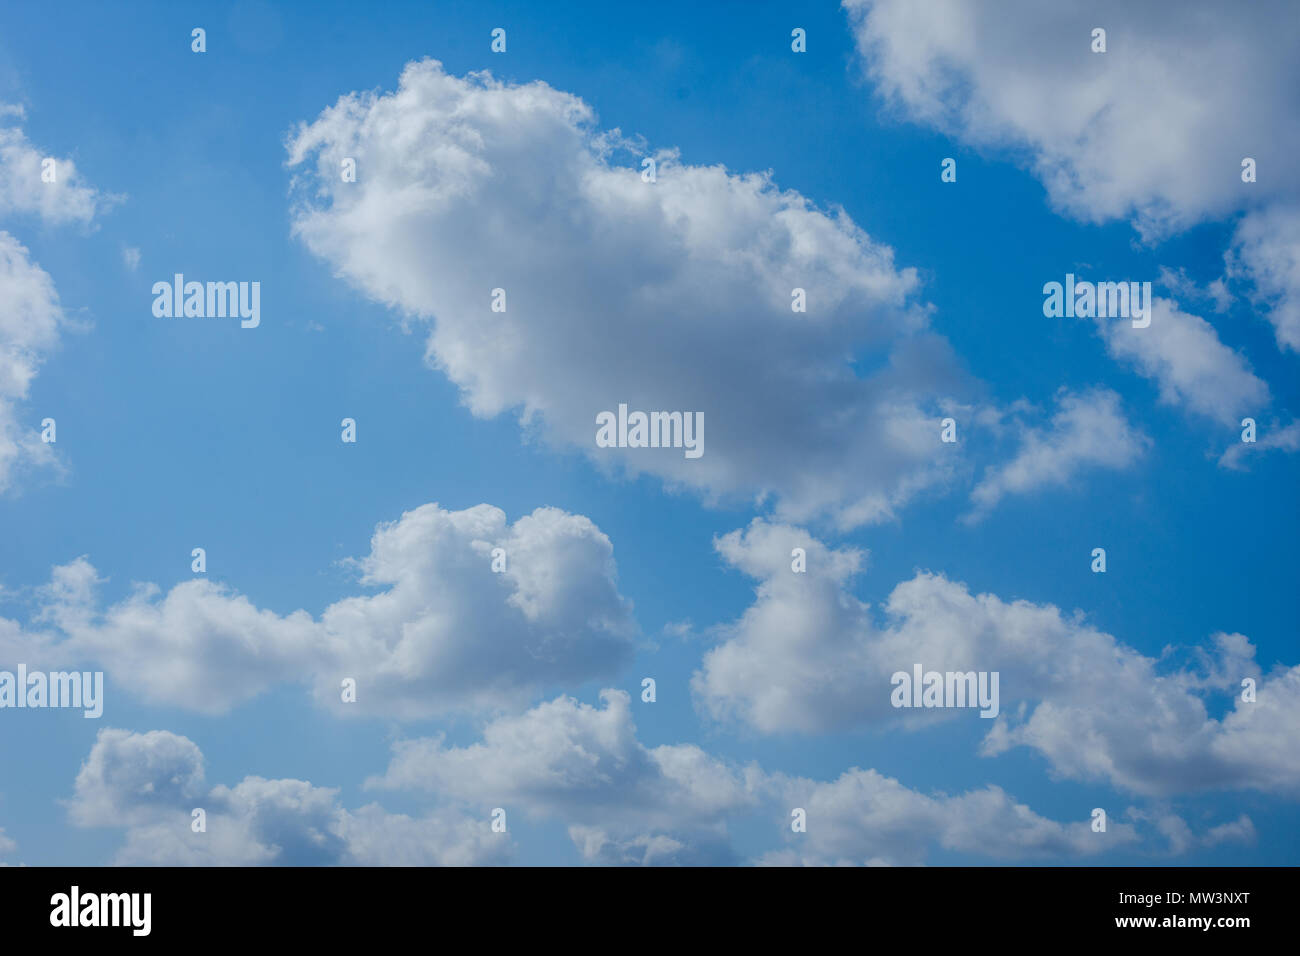 Fresh white clouds against blue sky - Stock Image